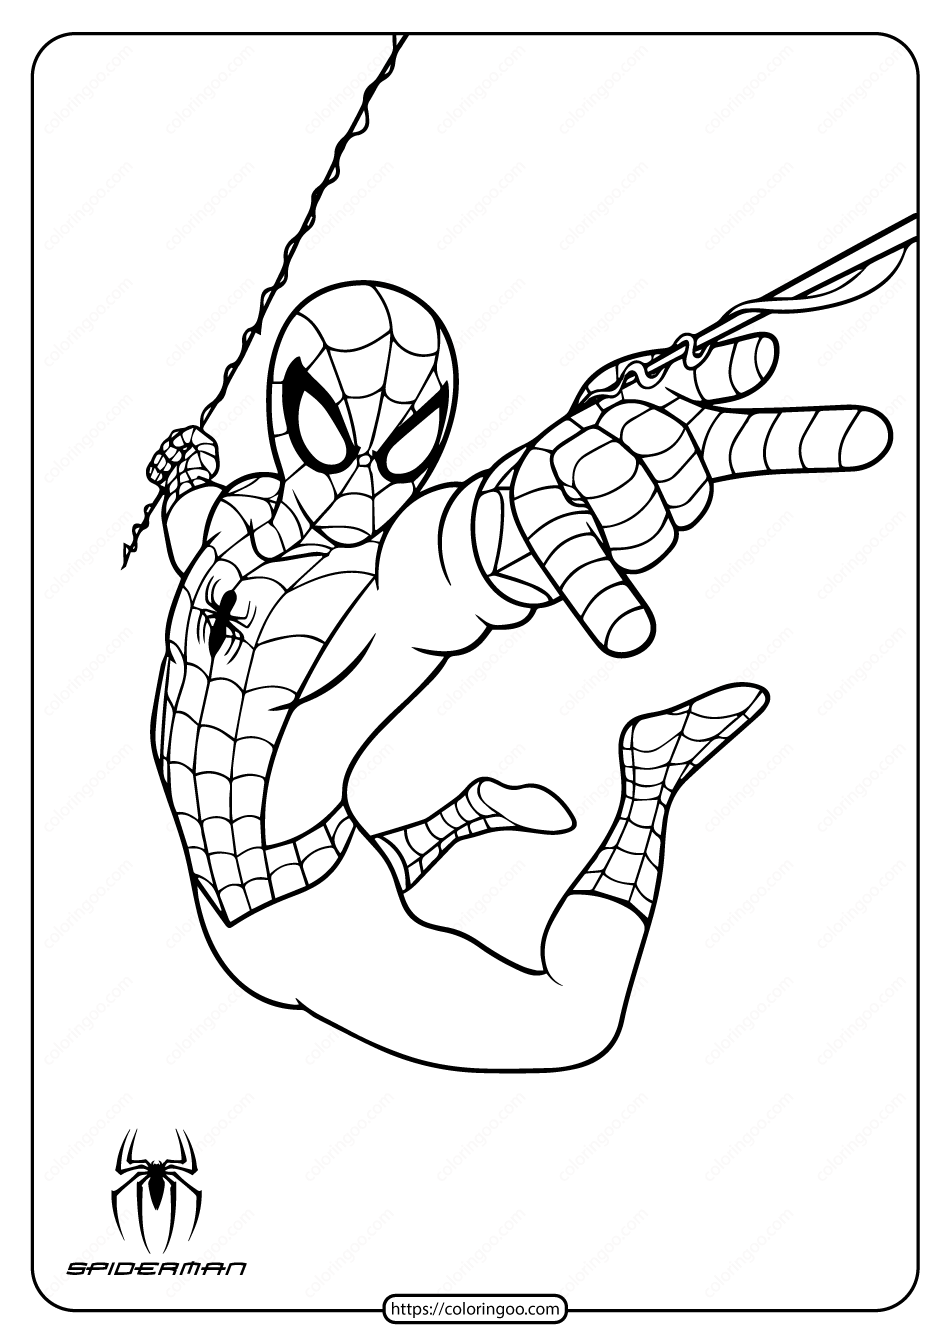 Printable Spiderman In Action Coloring Page Spiderman Coloring Coloring Pages Cartoon Coloring Pages